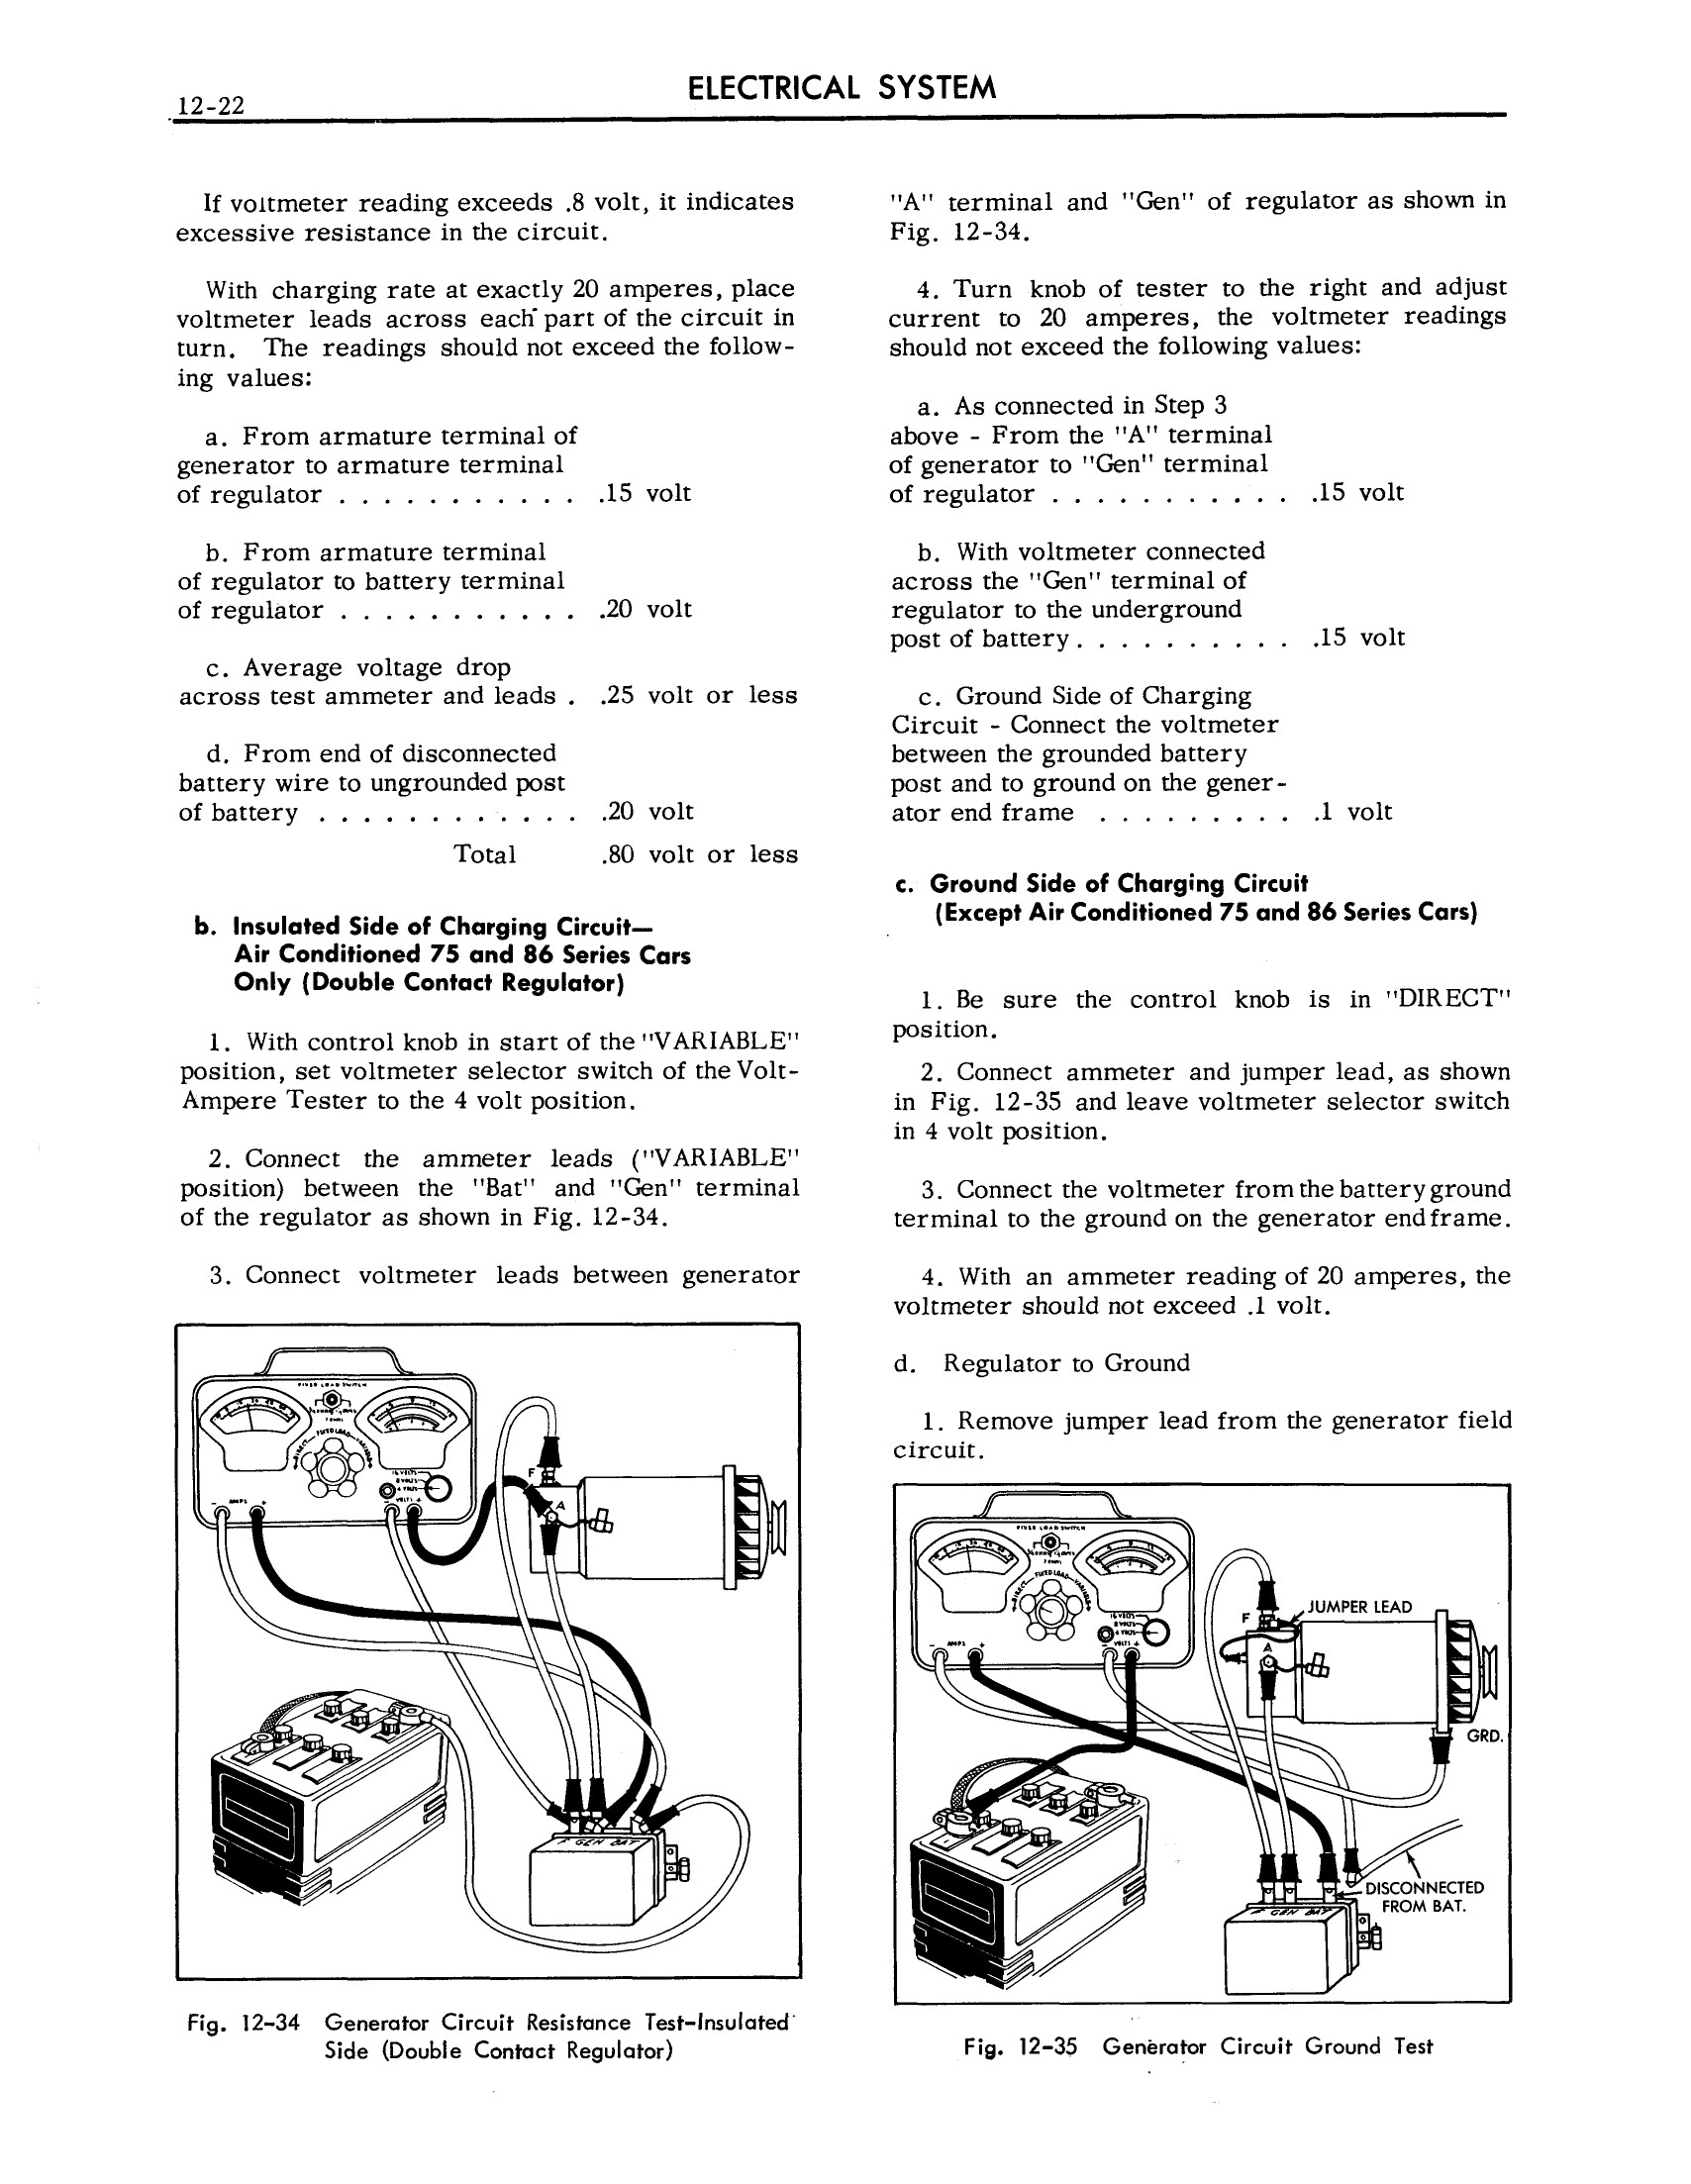 1957 Cadillac Shop Manual- Electrical Systems Page 22 of 50